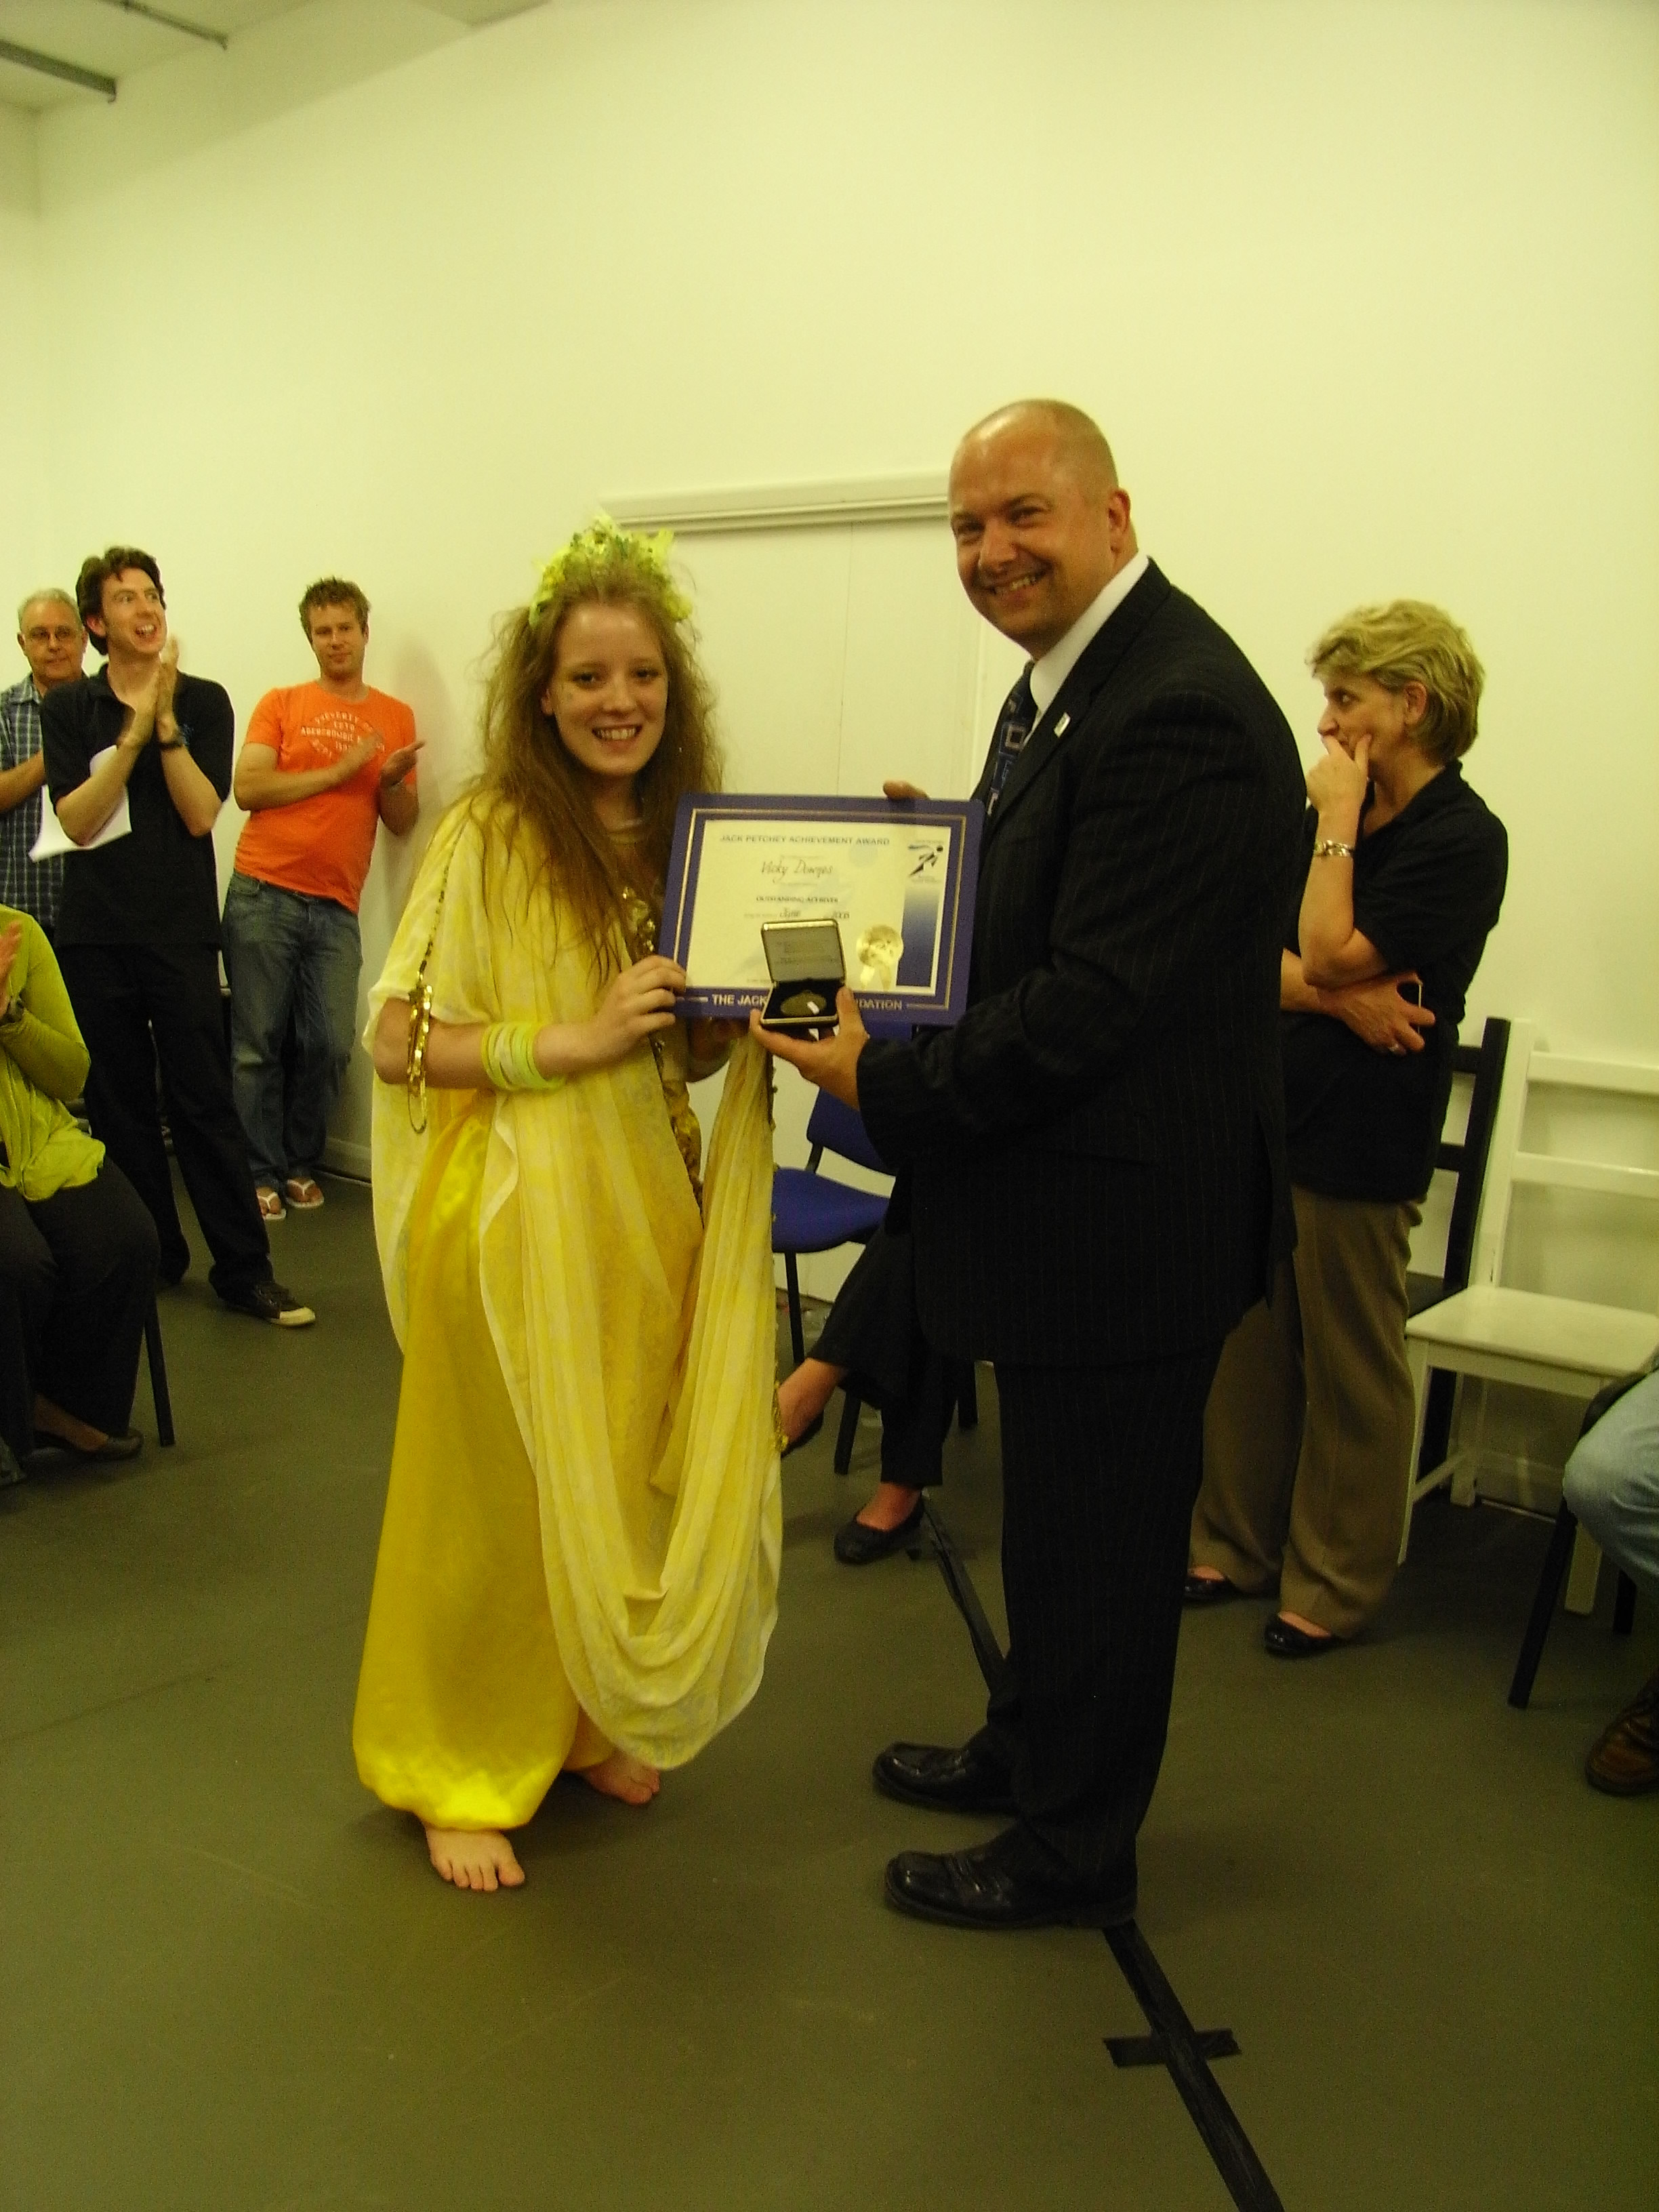 Chris Bullock presents JPF Award to B&D Youth Theatre member Vicky Downes